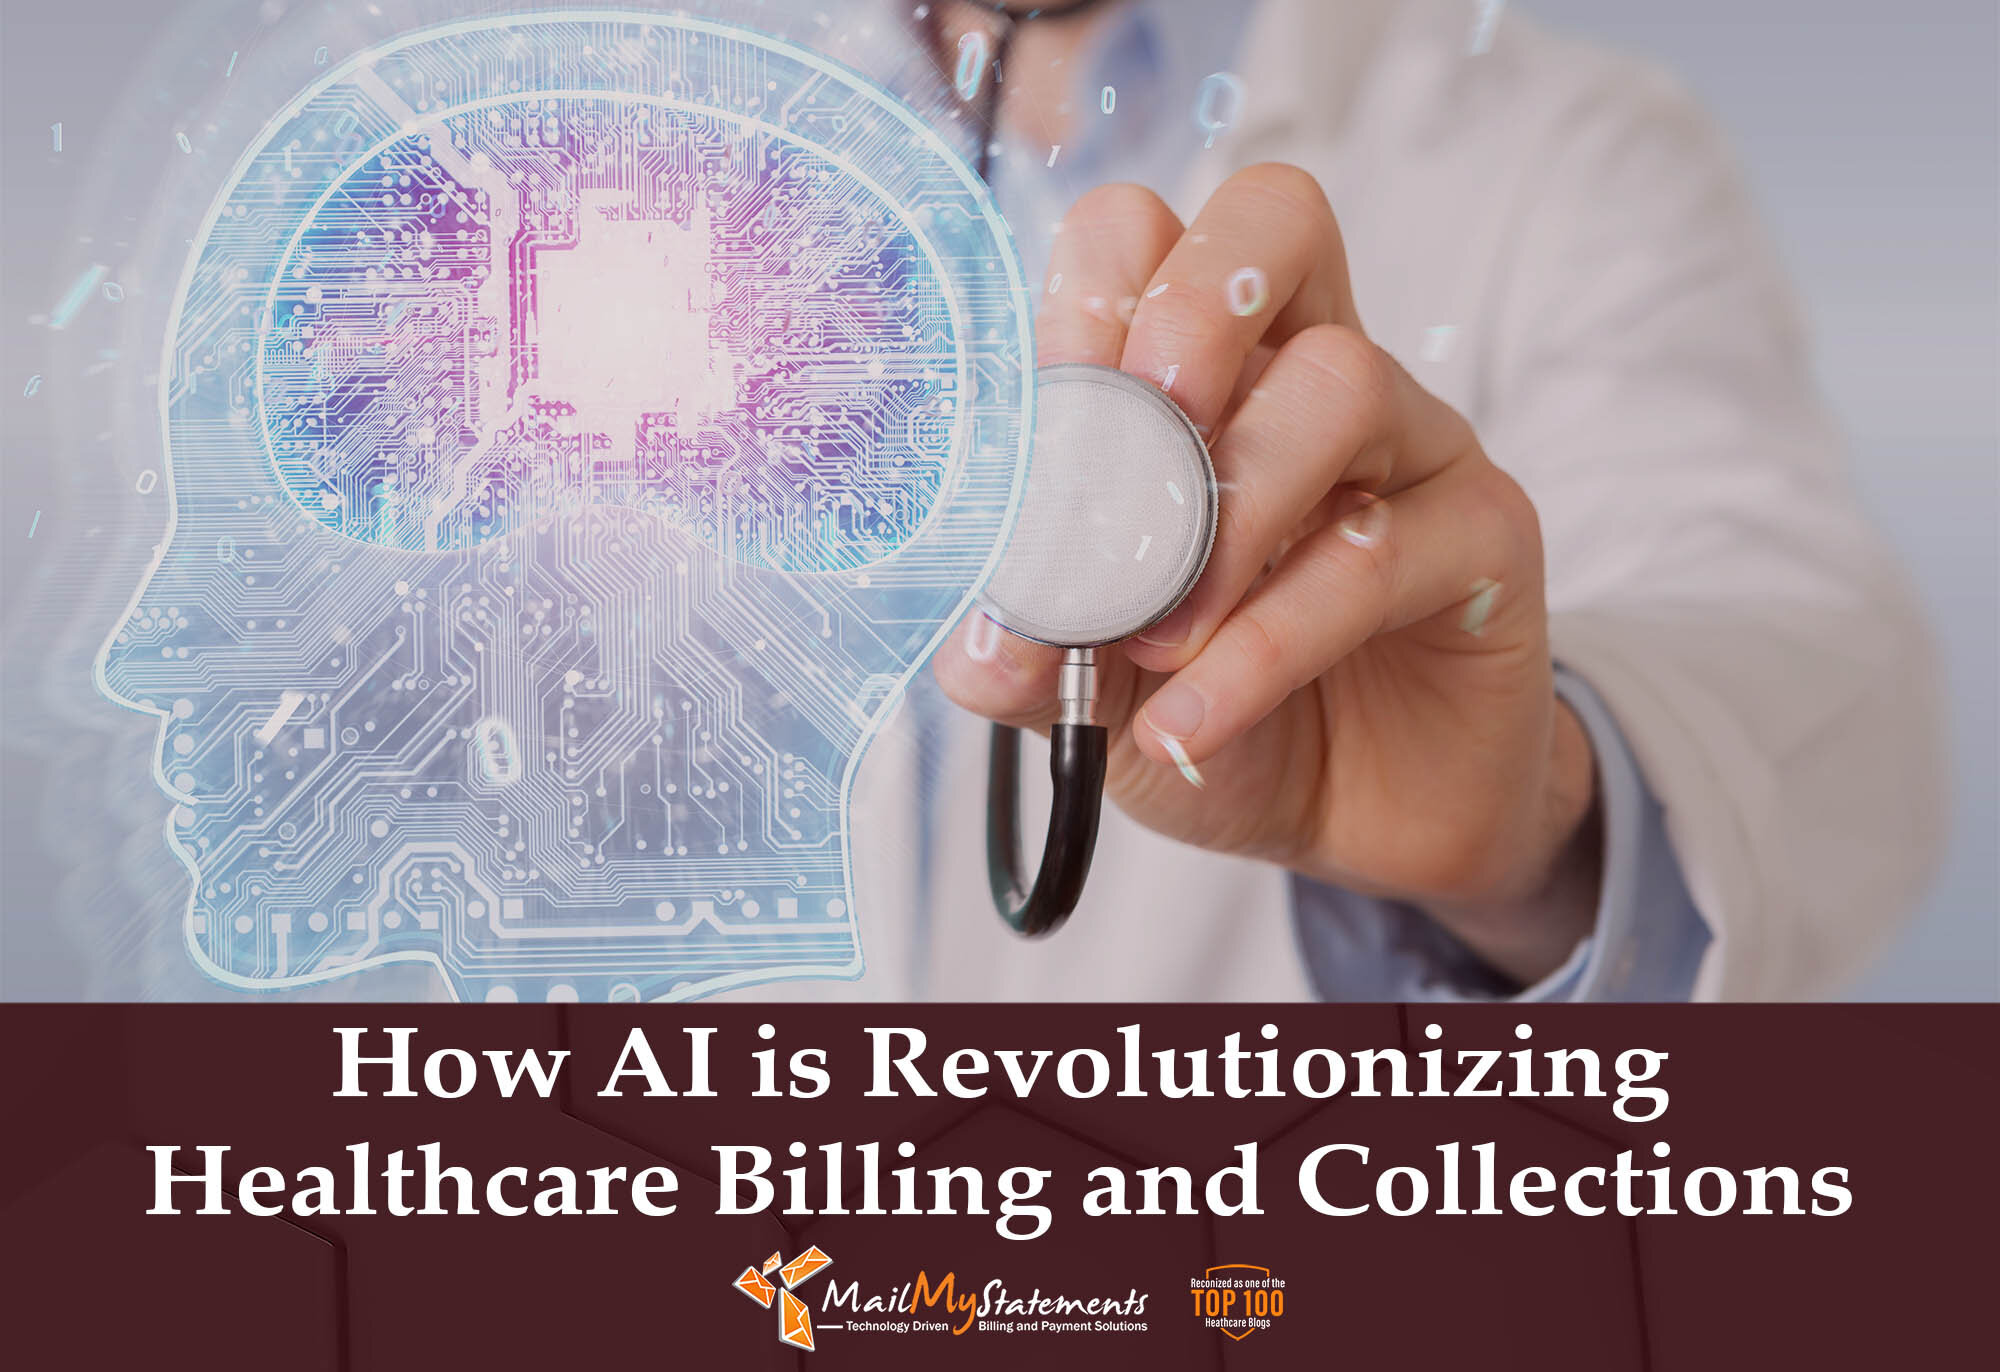 How Artificial Intelligence Is Revolutionizing Healthcare Billing and Collections